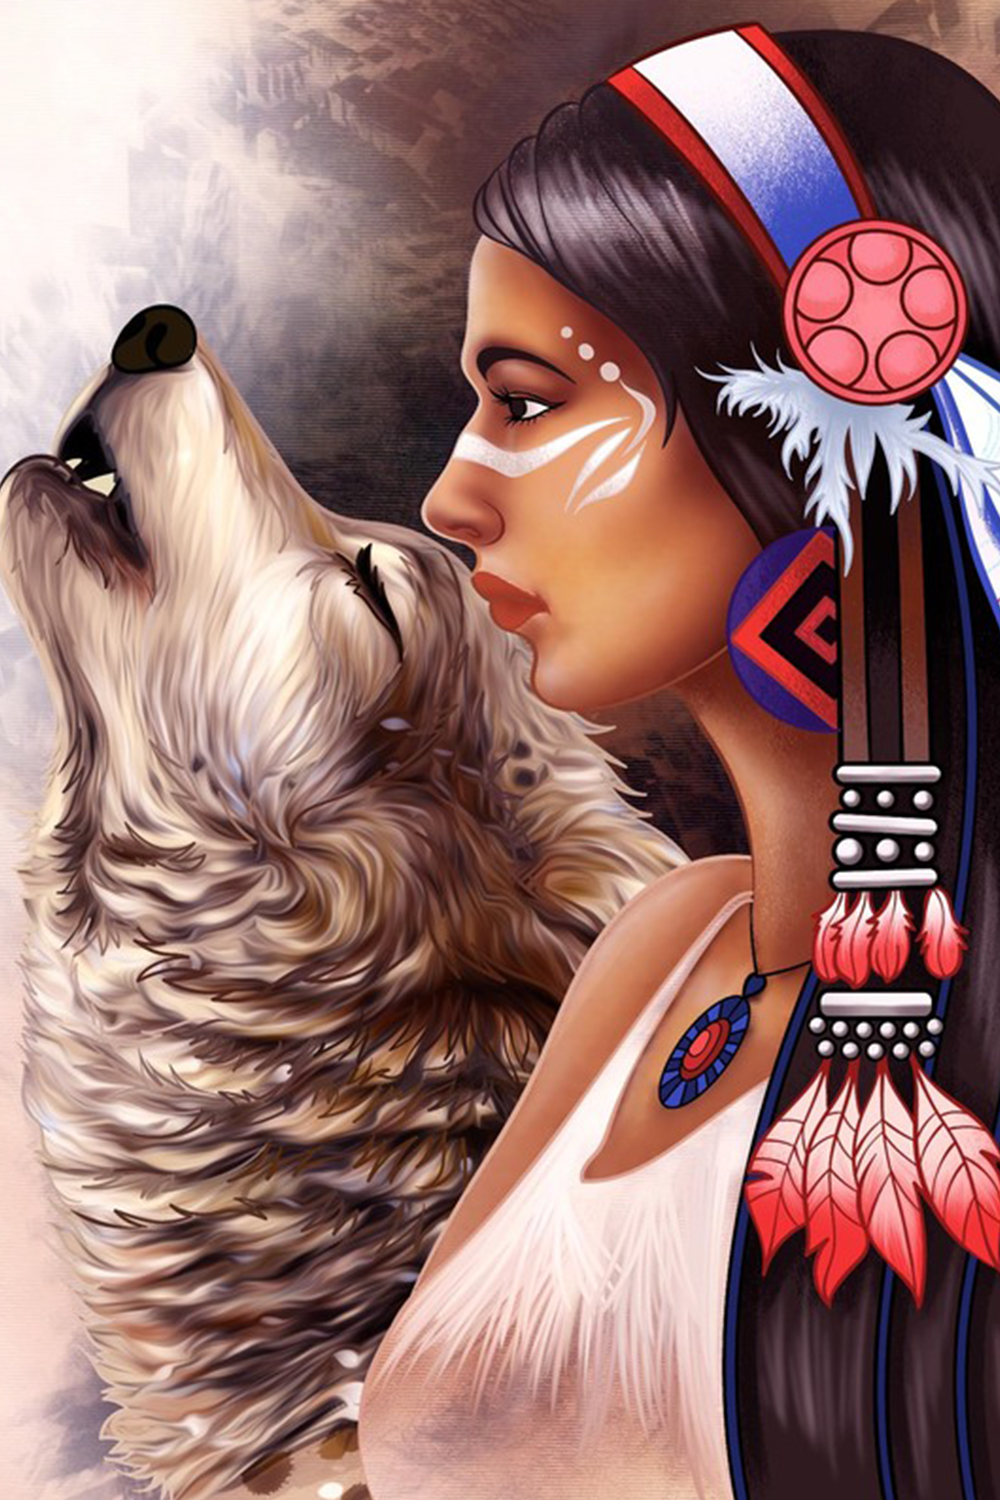 Paint By Number Free Coloring Book Puzzle Game Spiritual Artwork Art American Indian Art